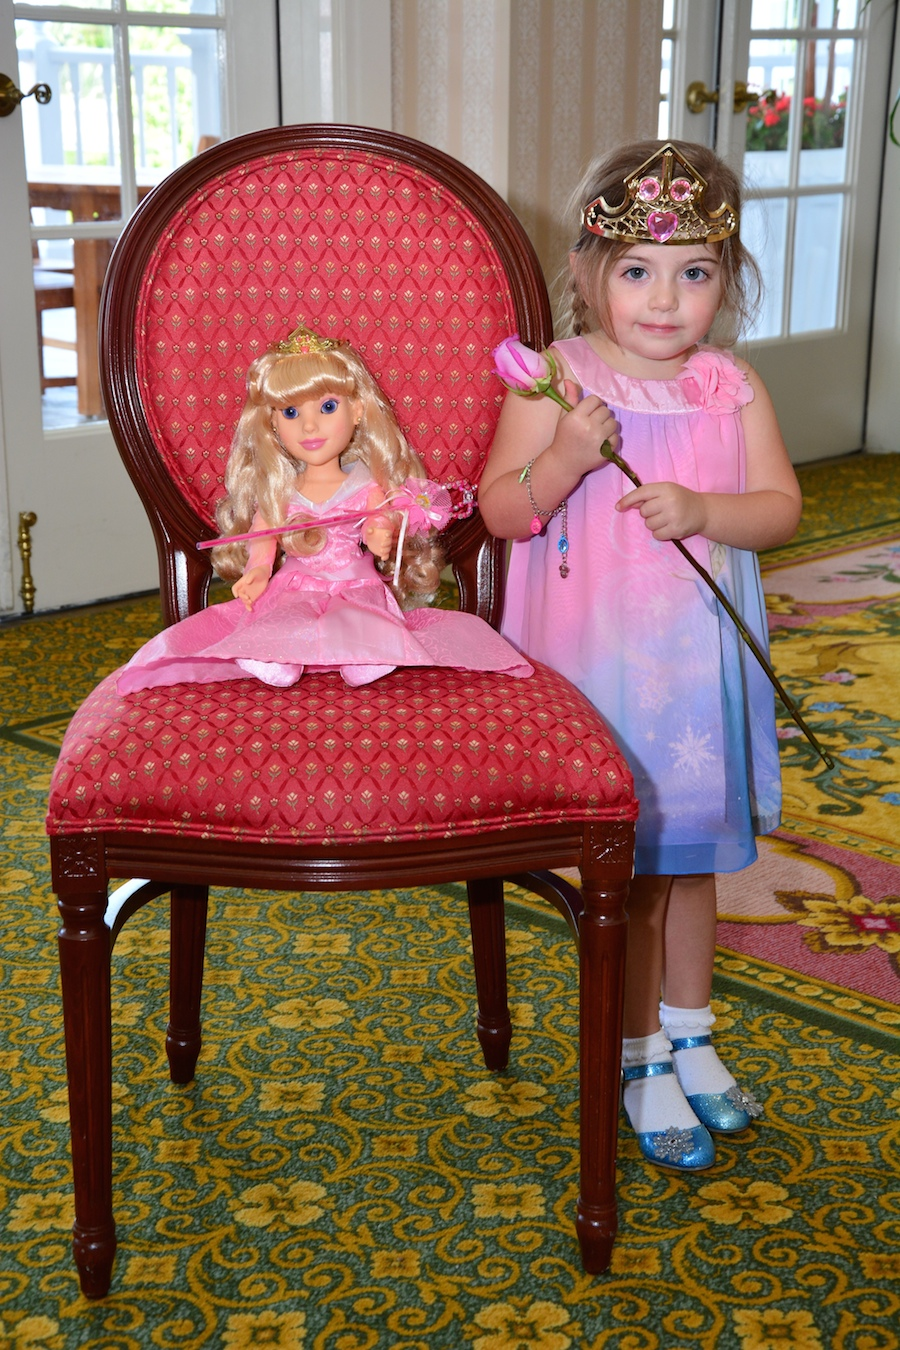 Little Princesses Enjoy My Disney Girl's Perfectly Princess Tea Party at Disney's Grand Floridian Resort & Spa